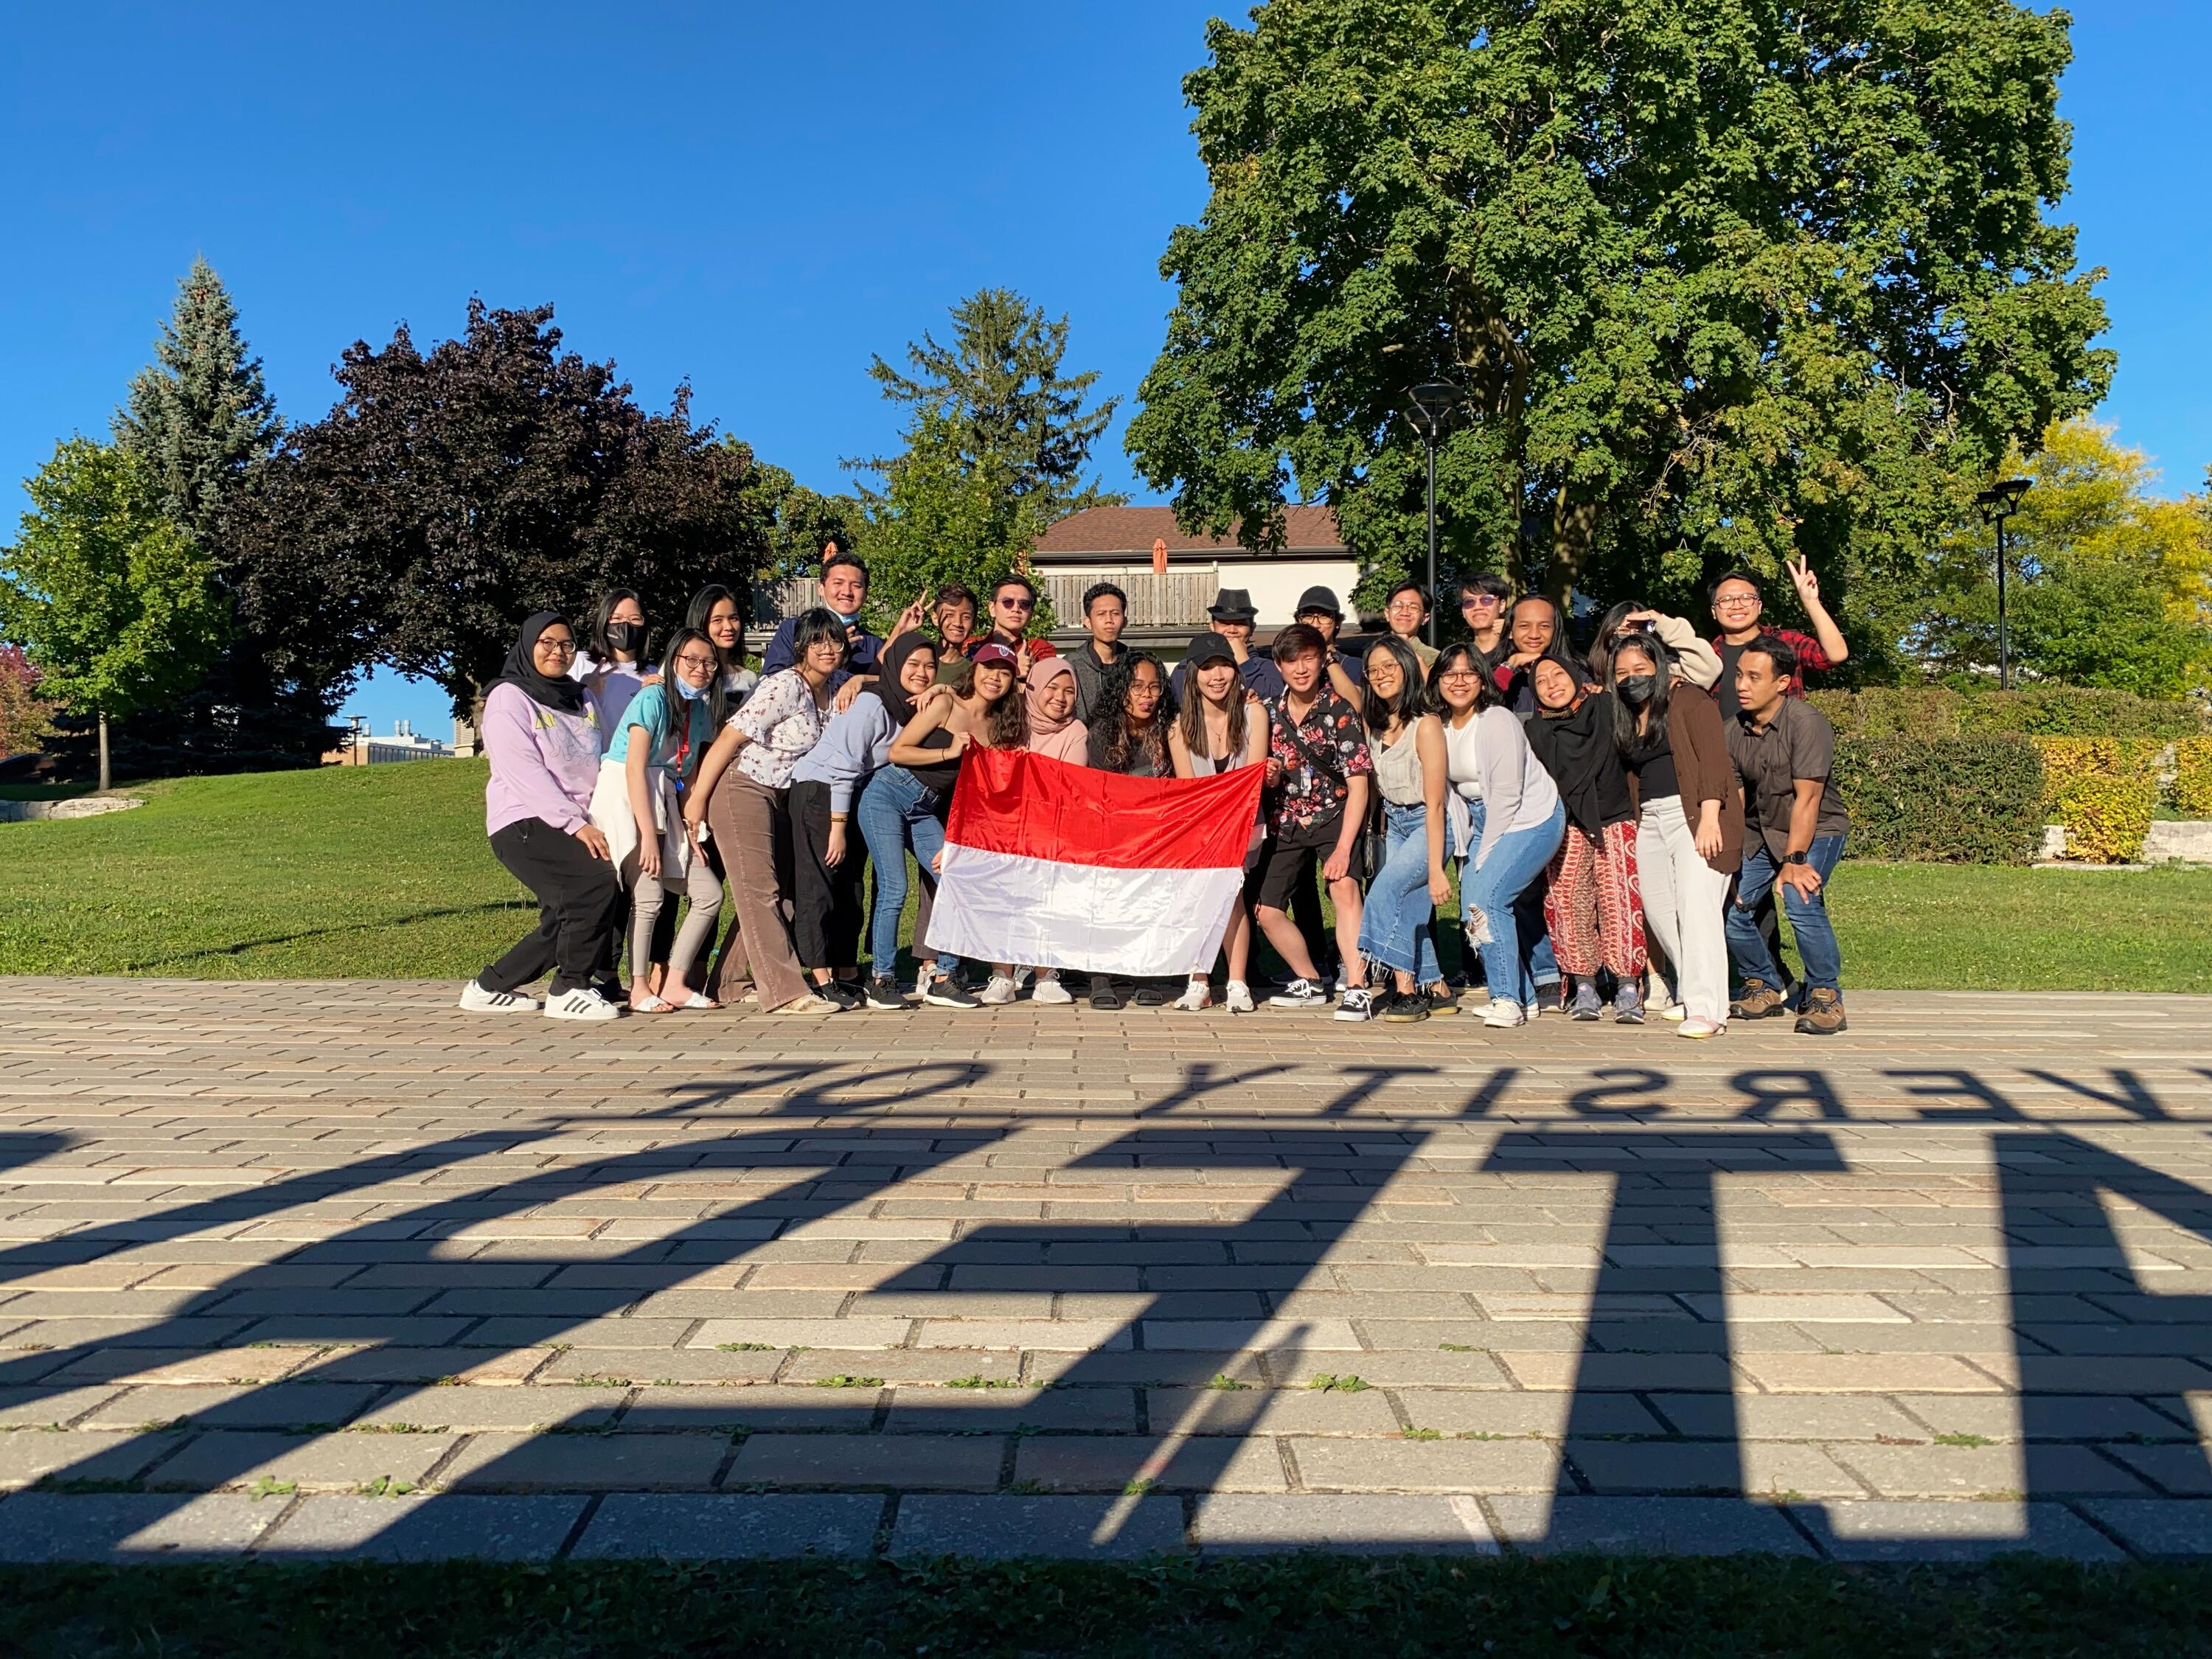 Indonesian students holding flag